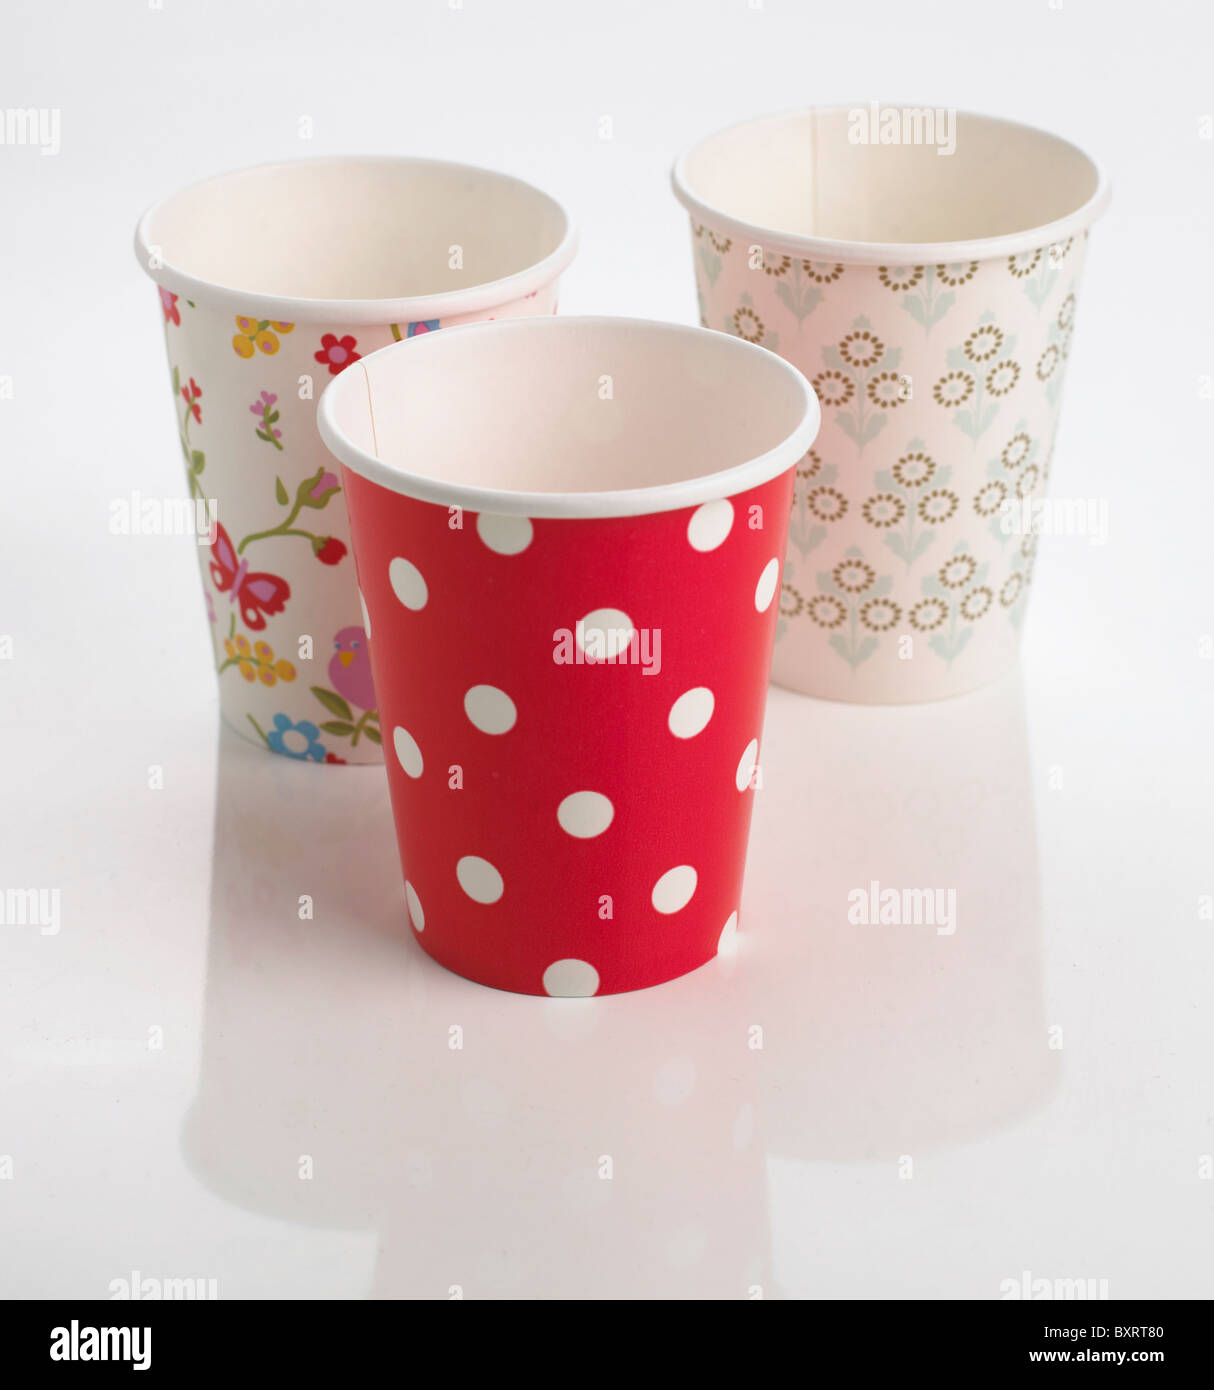 Paper Cups Stock Photos & Paper Cups Stock Images - Alamy